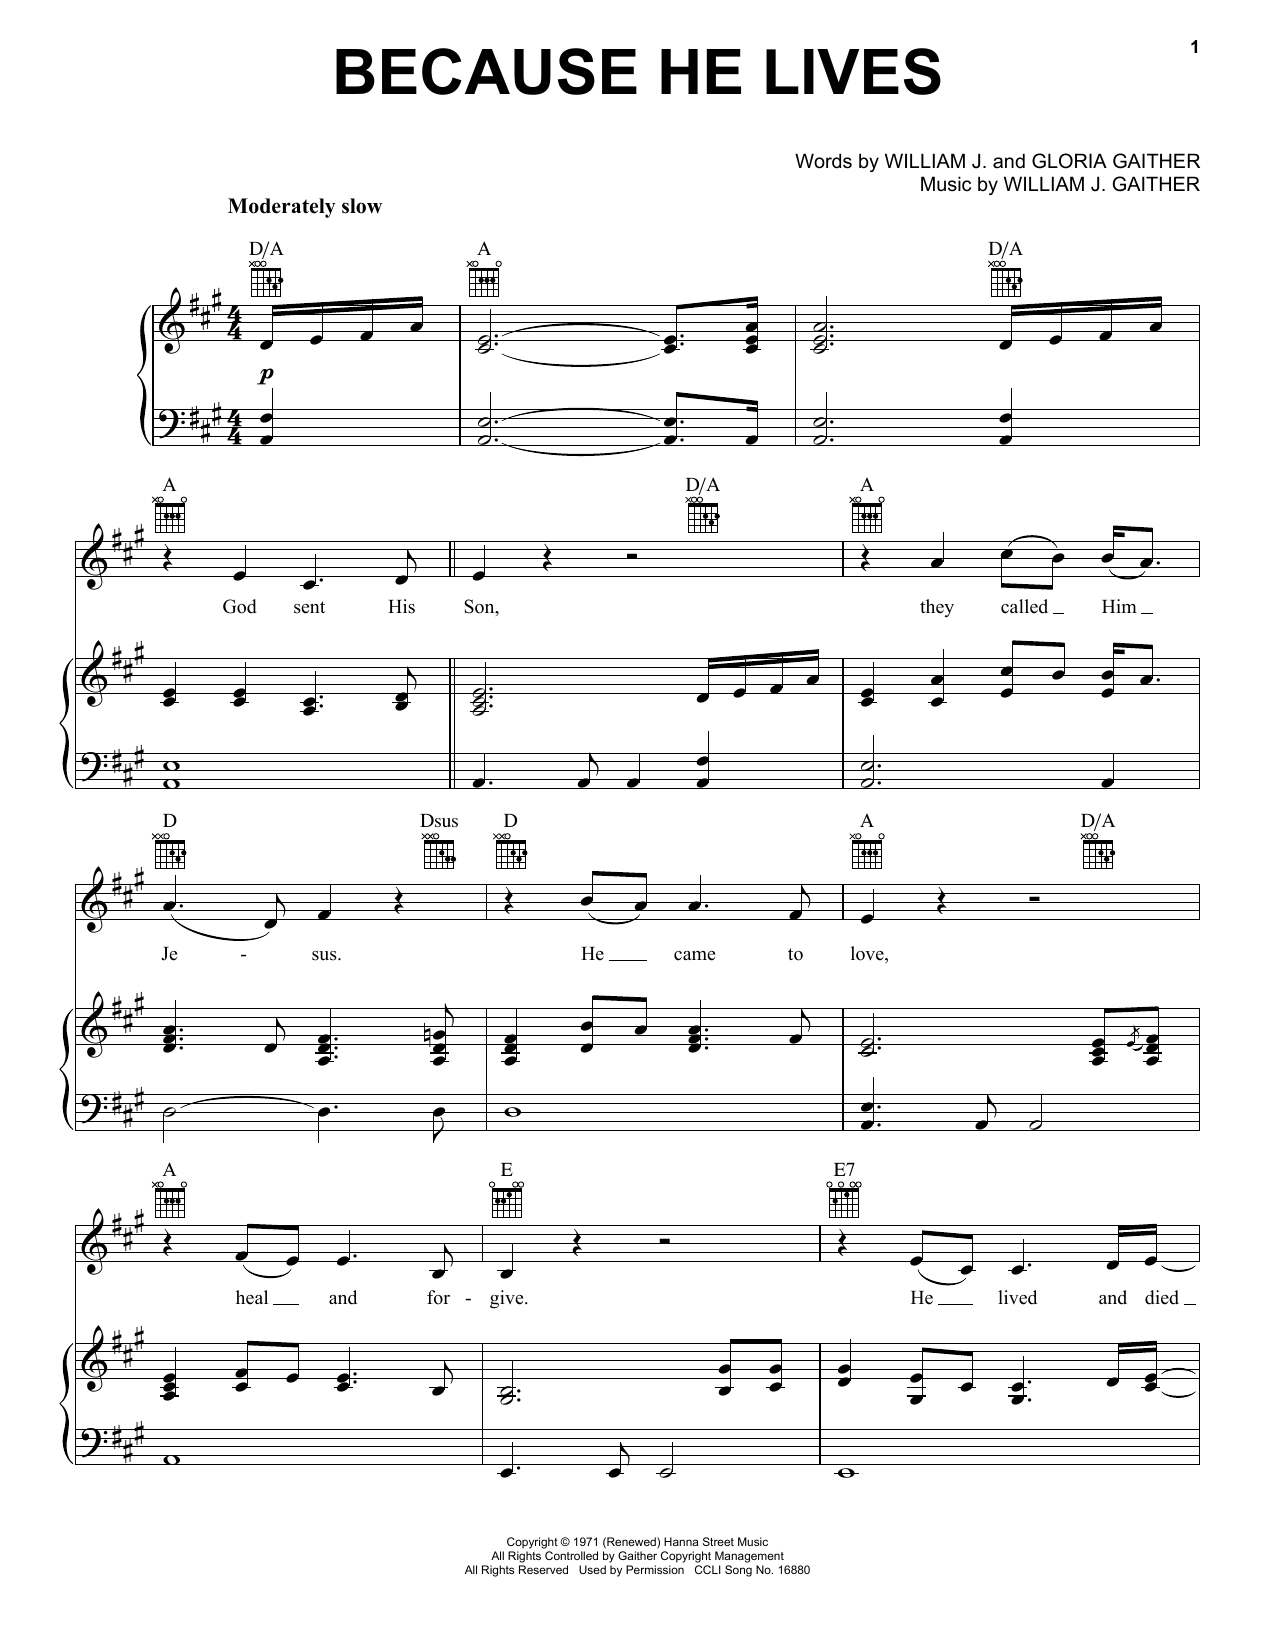 Because He Lives Chords David Crowder Band Because He Lives Sheet Music Notes Chords Download Printable Piano Vocal Guitar Right Hand Melody Sku 157507